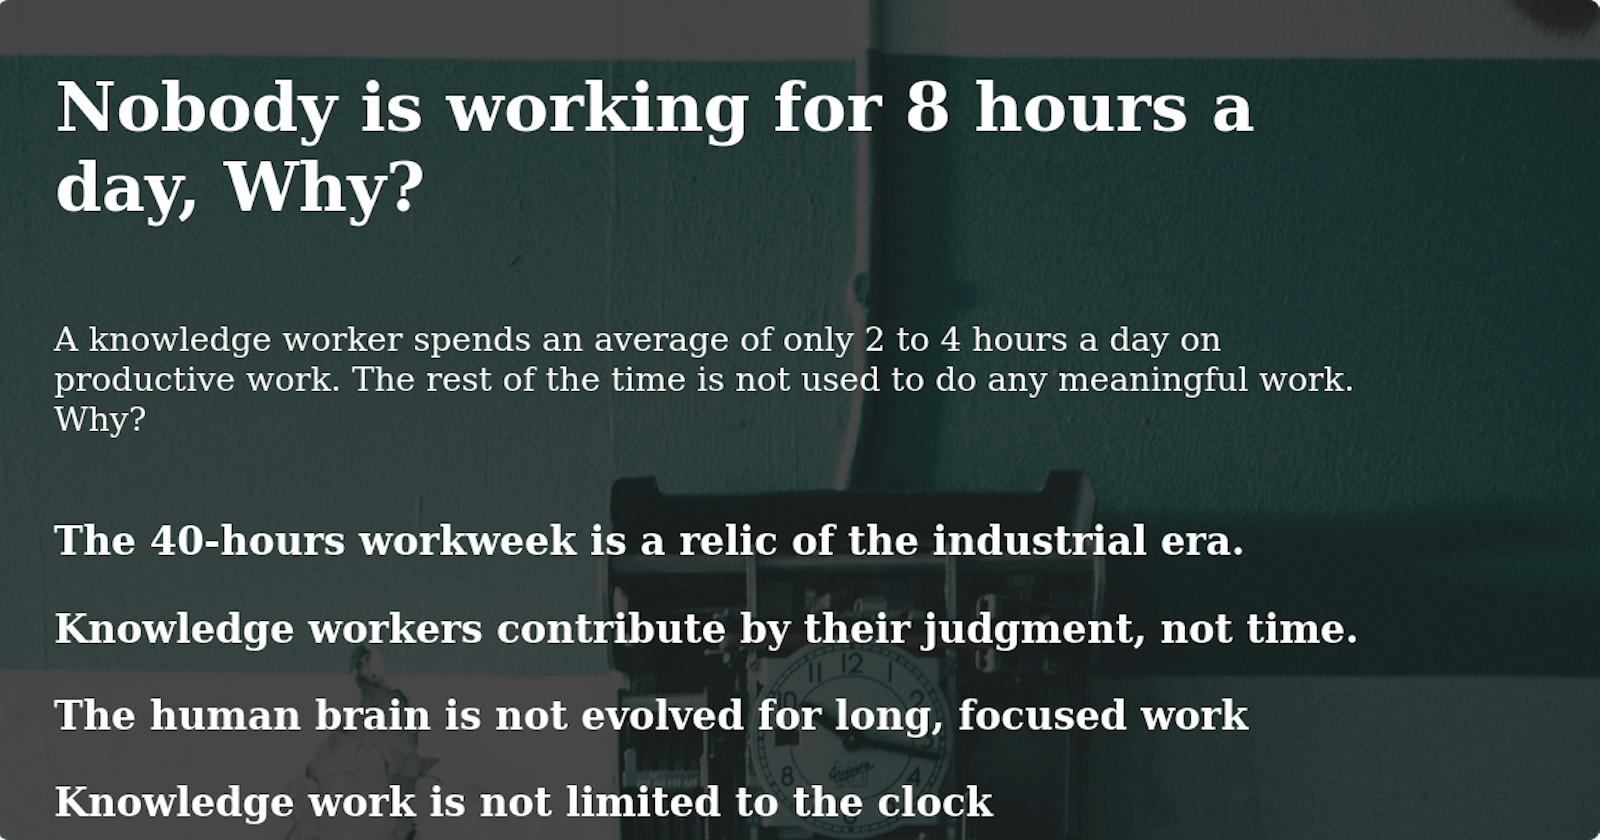 Nobody is working for 8 hours a day, Why?